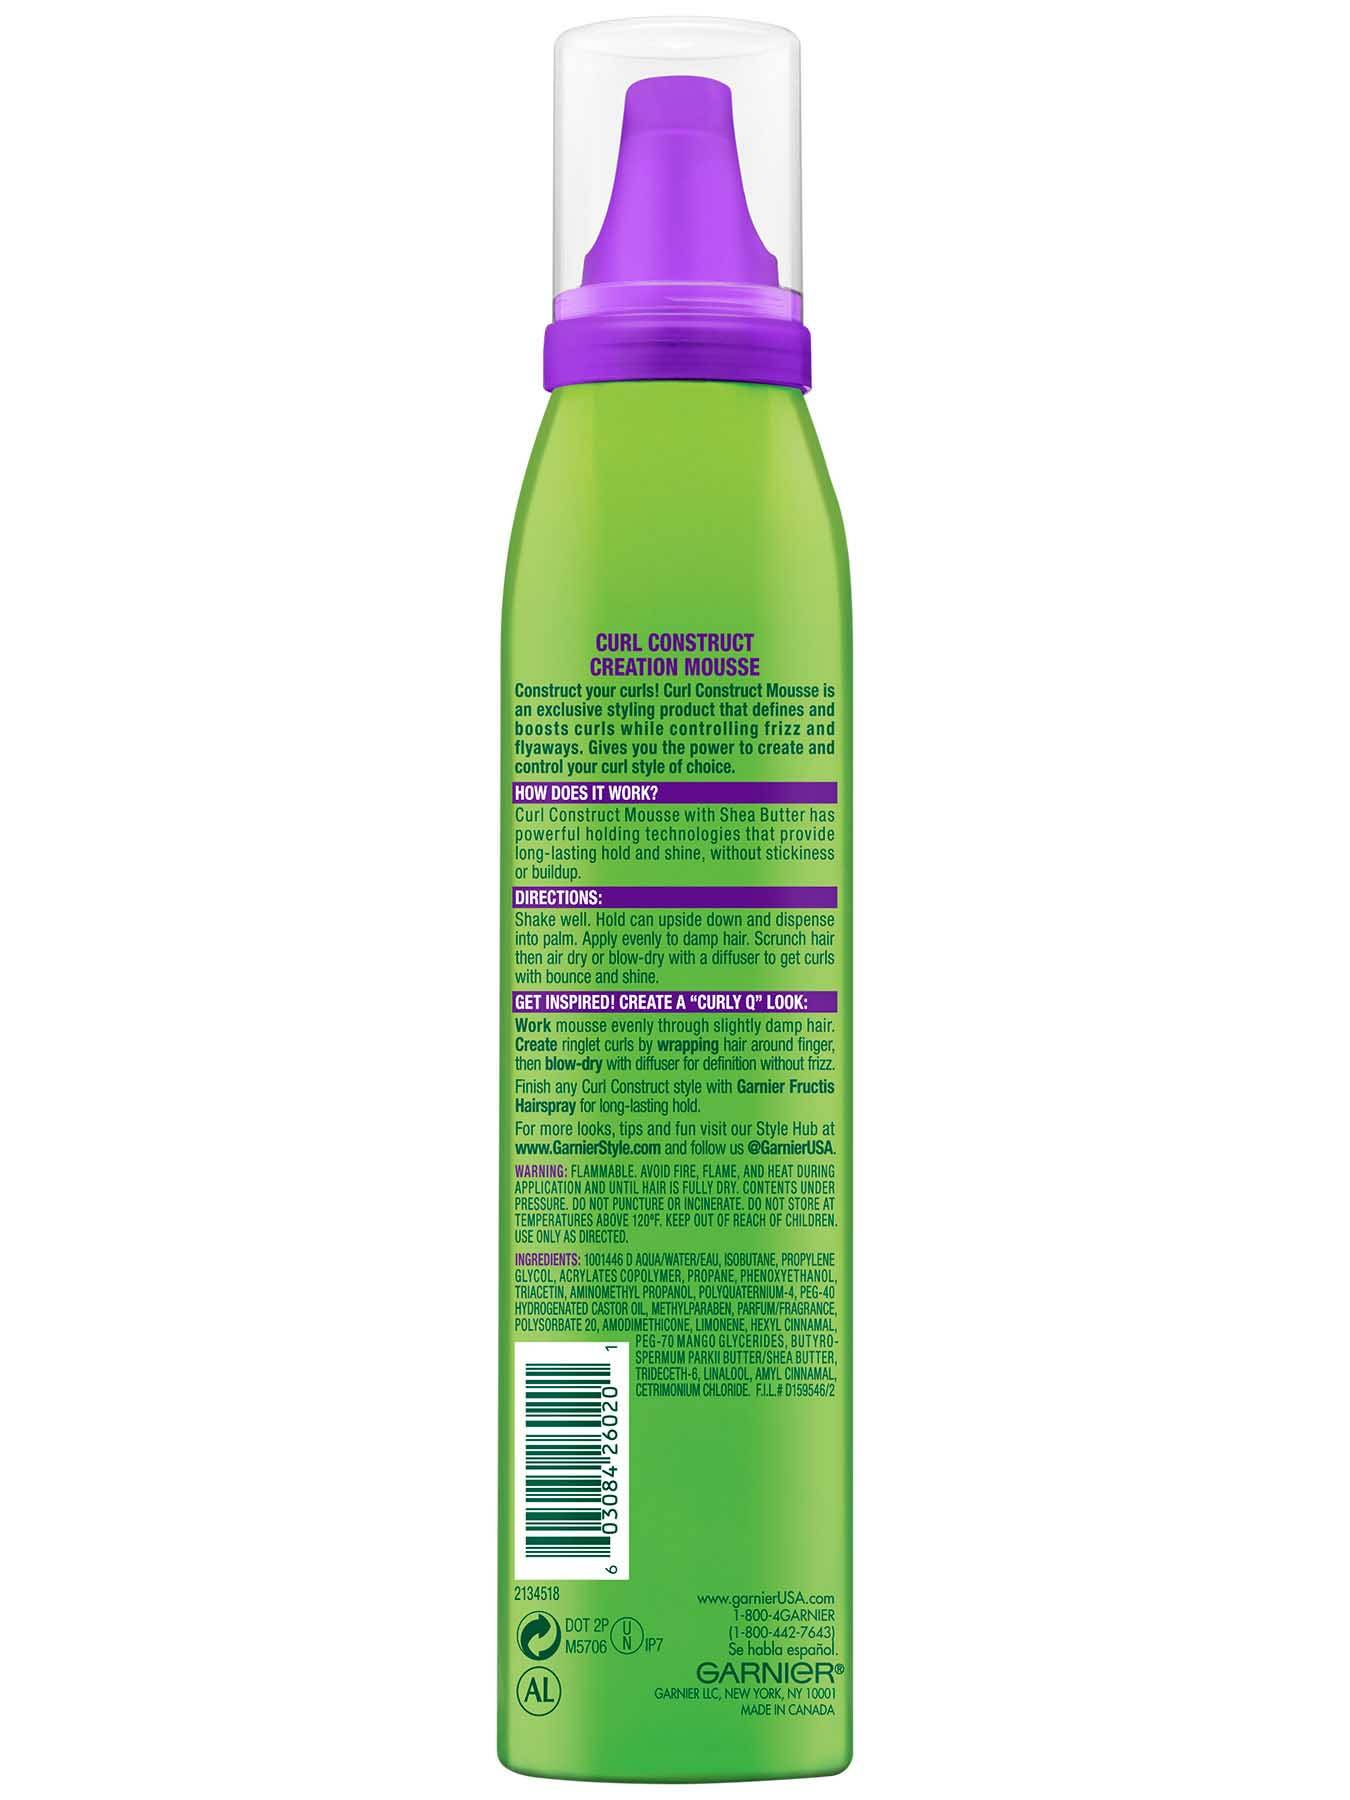 Garnier Fructis Style Curl Construct Creation Mousse Back Of Bottle